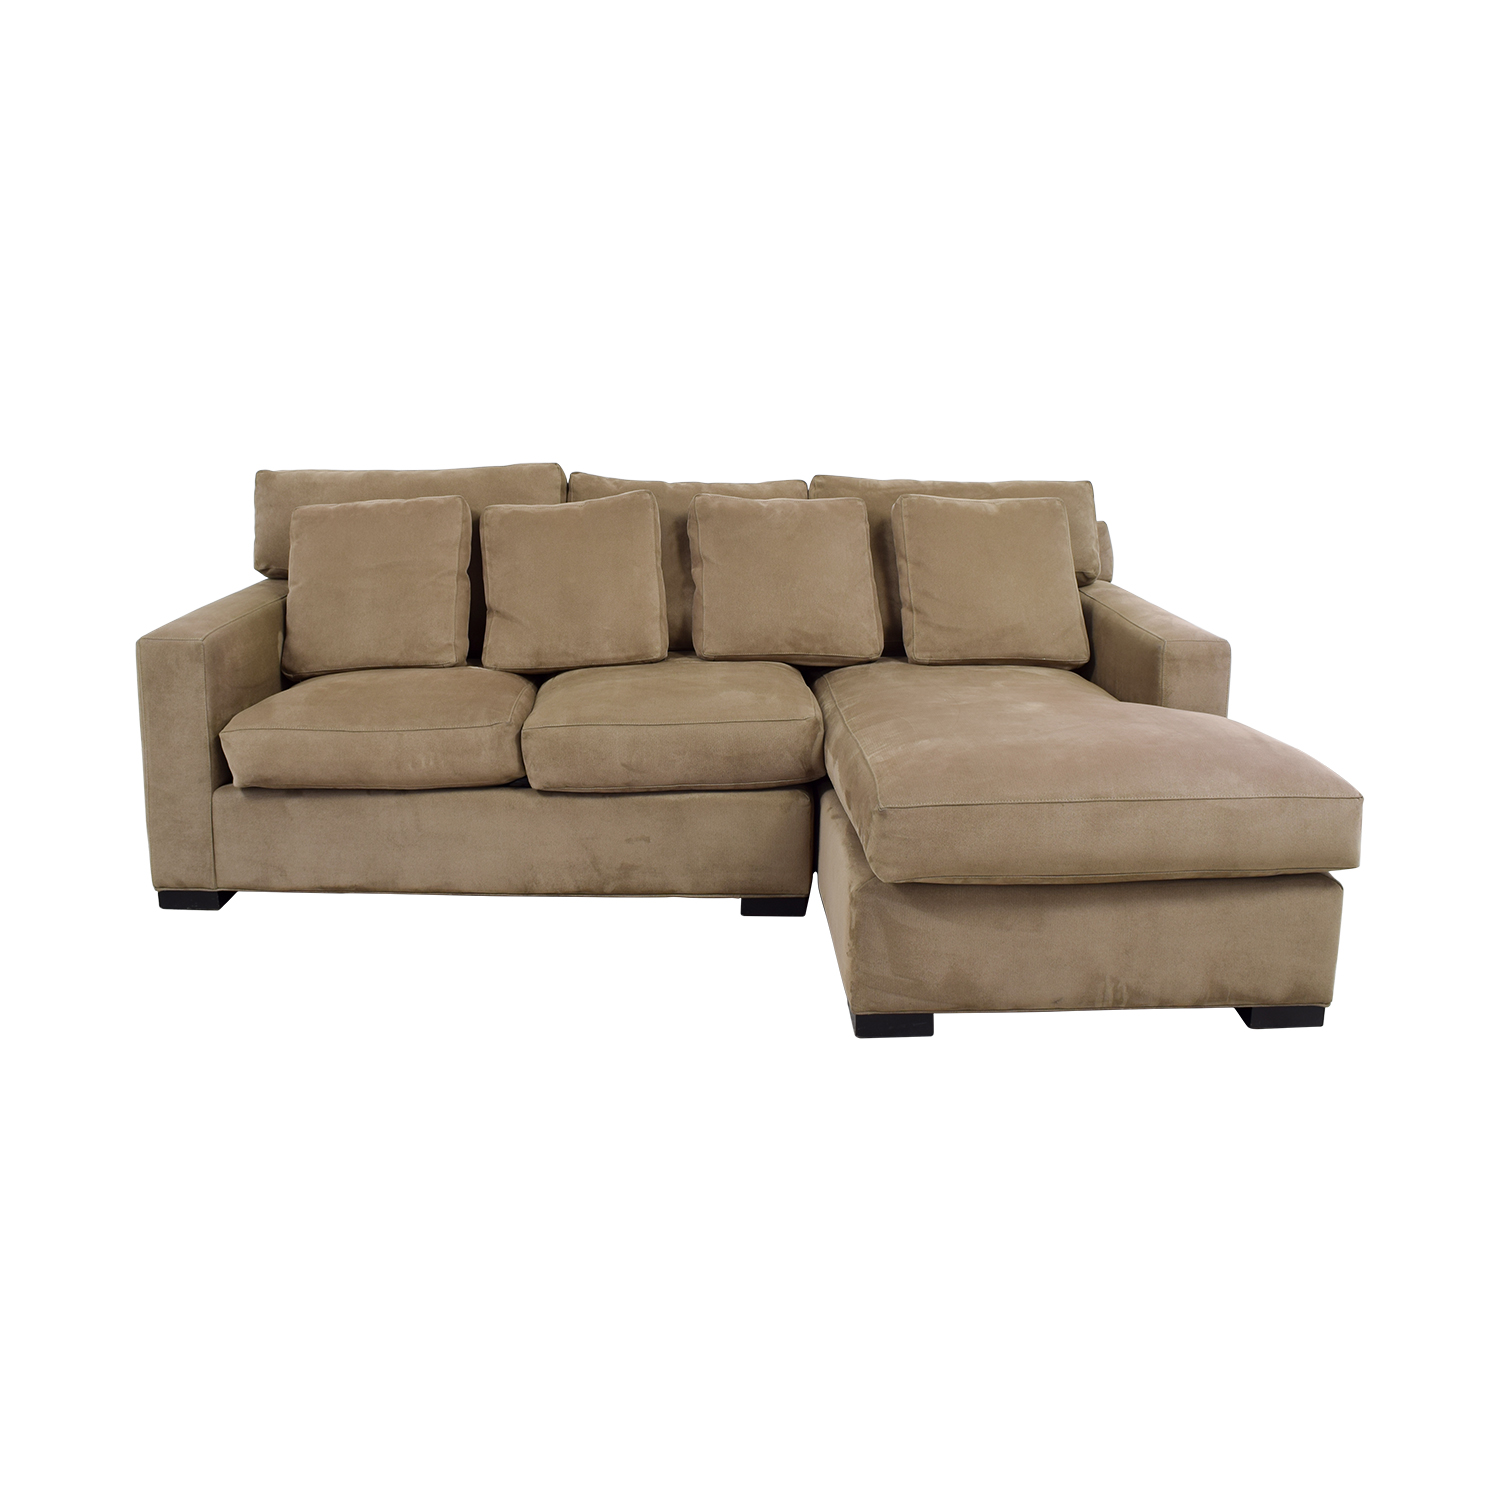 shop Crate & Barrel Axis Tan Right Arm Chaise Lounge Crate & Barrel